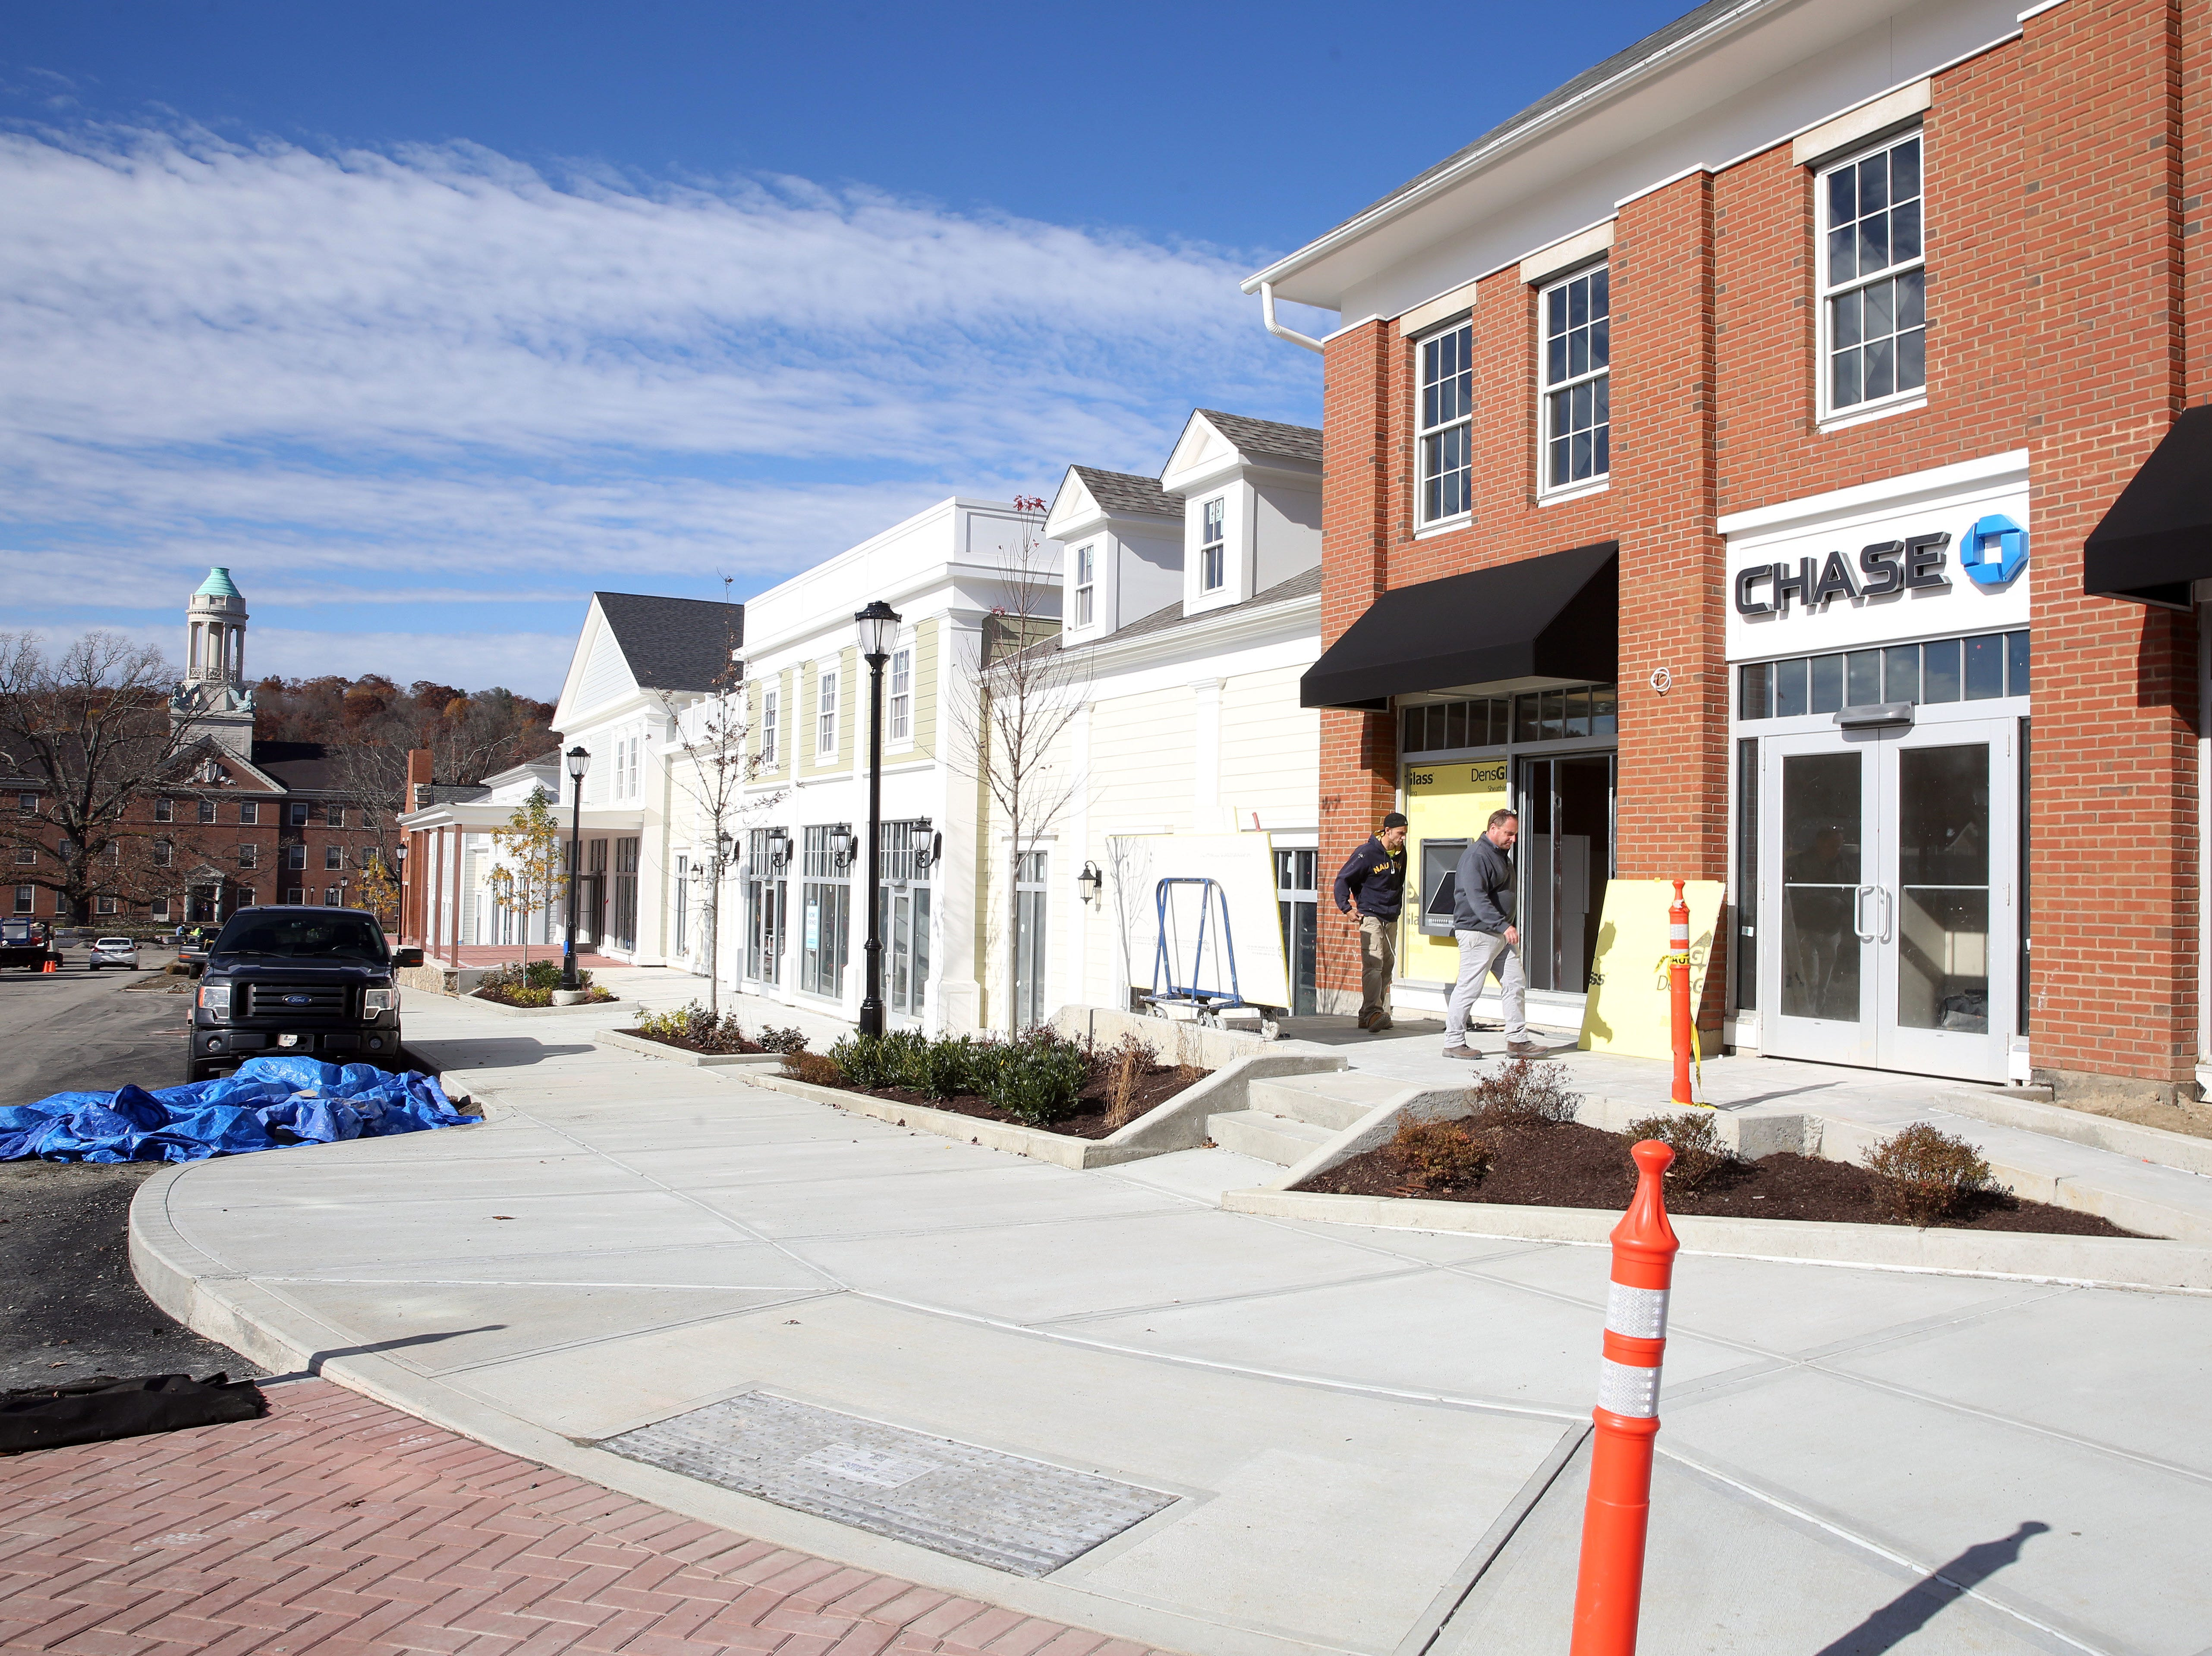 Chase Bank and other businessess will open Chappaqua Crossing in Chappaqua Nov. 7,  2018.